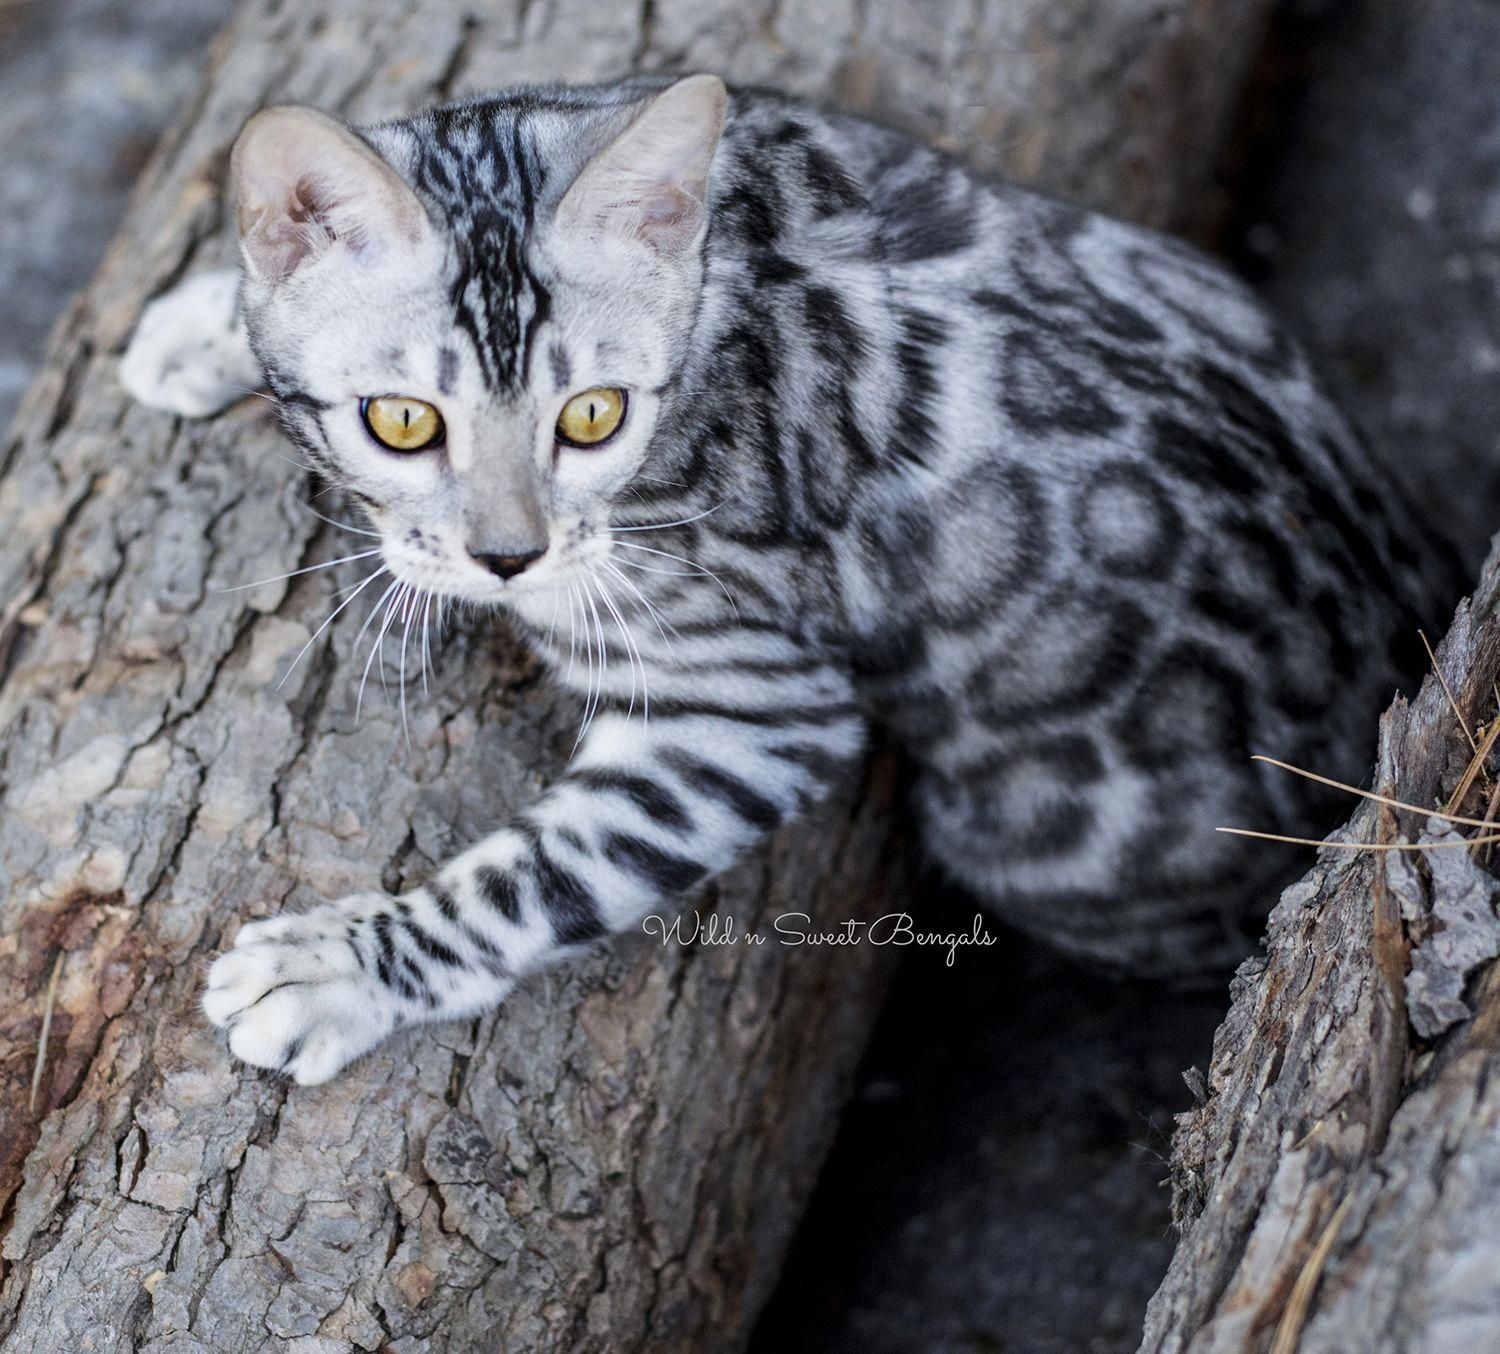 I Felled Over With Images Silver Bengal Cat Bengal Kitten Bengal Cat